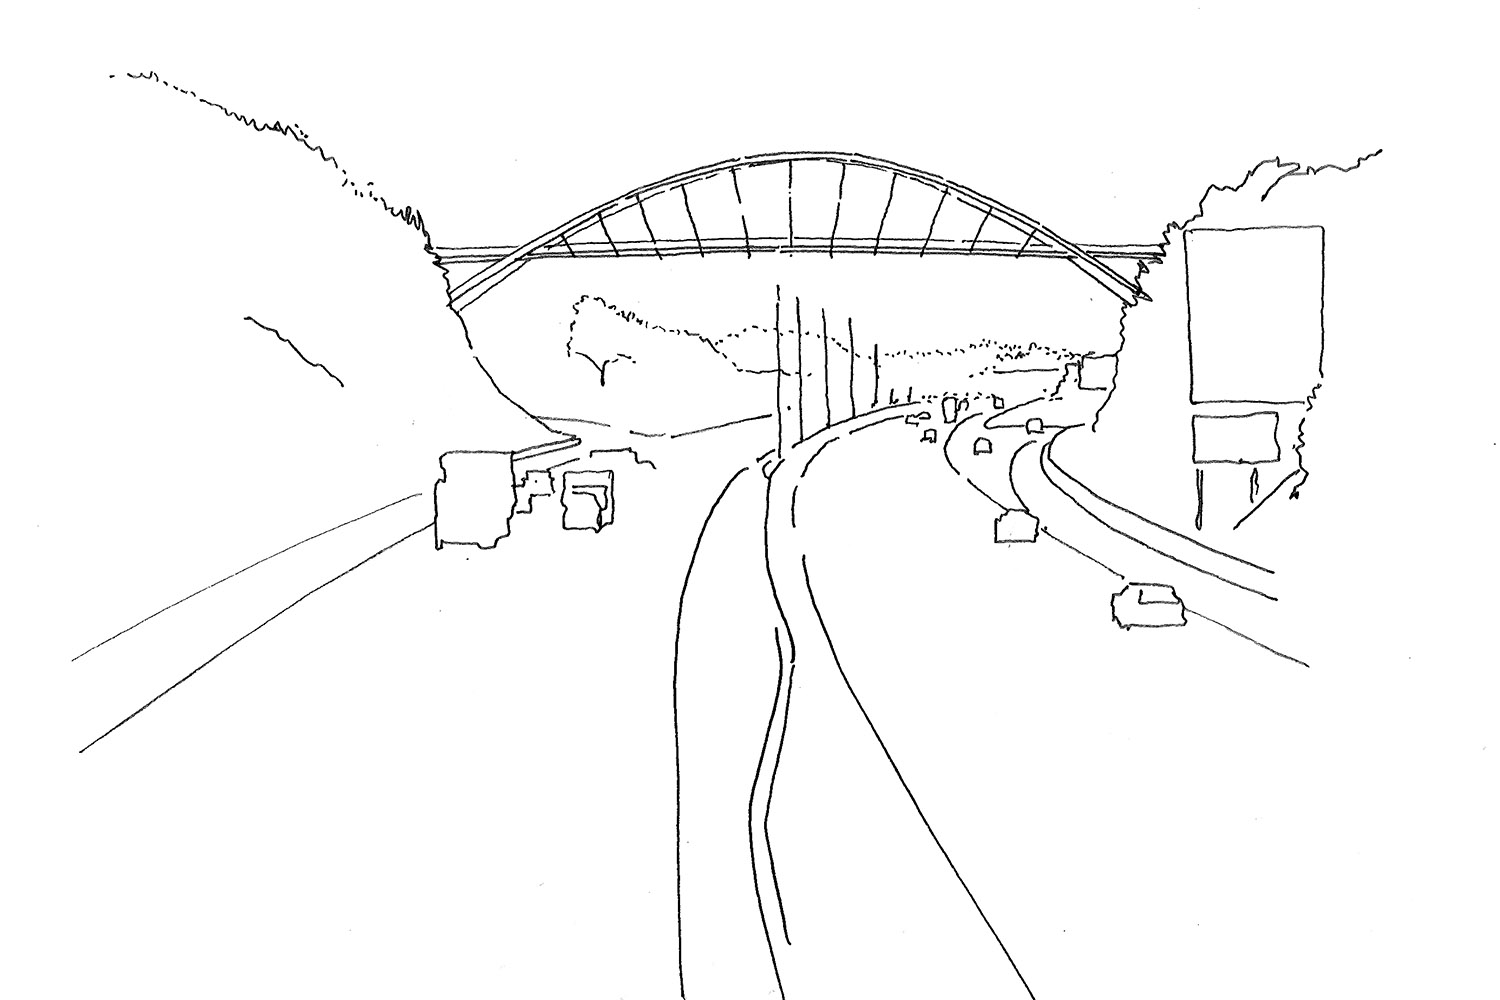 DesignEngine Redhayes Bridge sketch overview